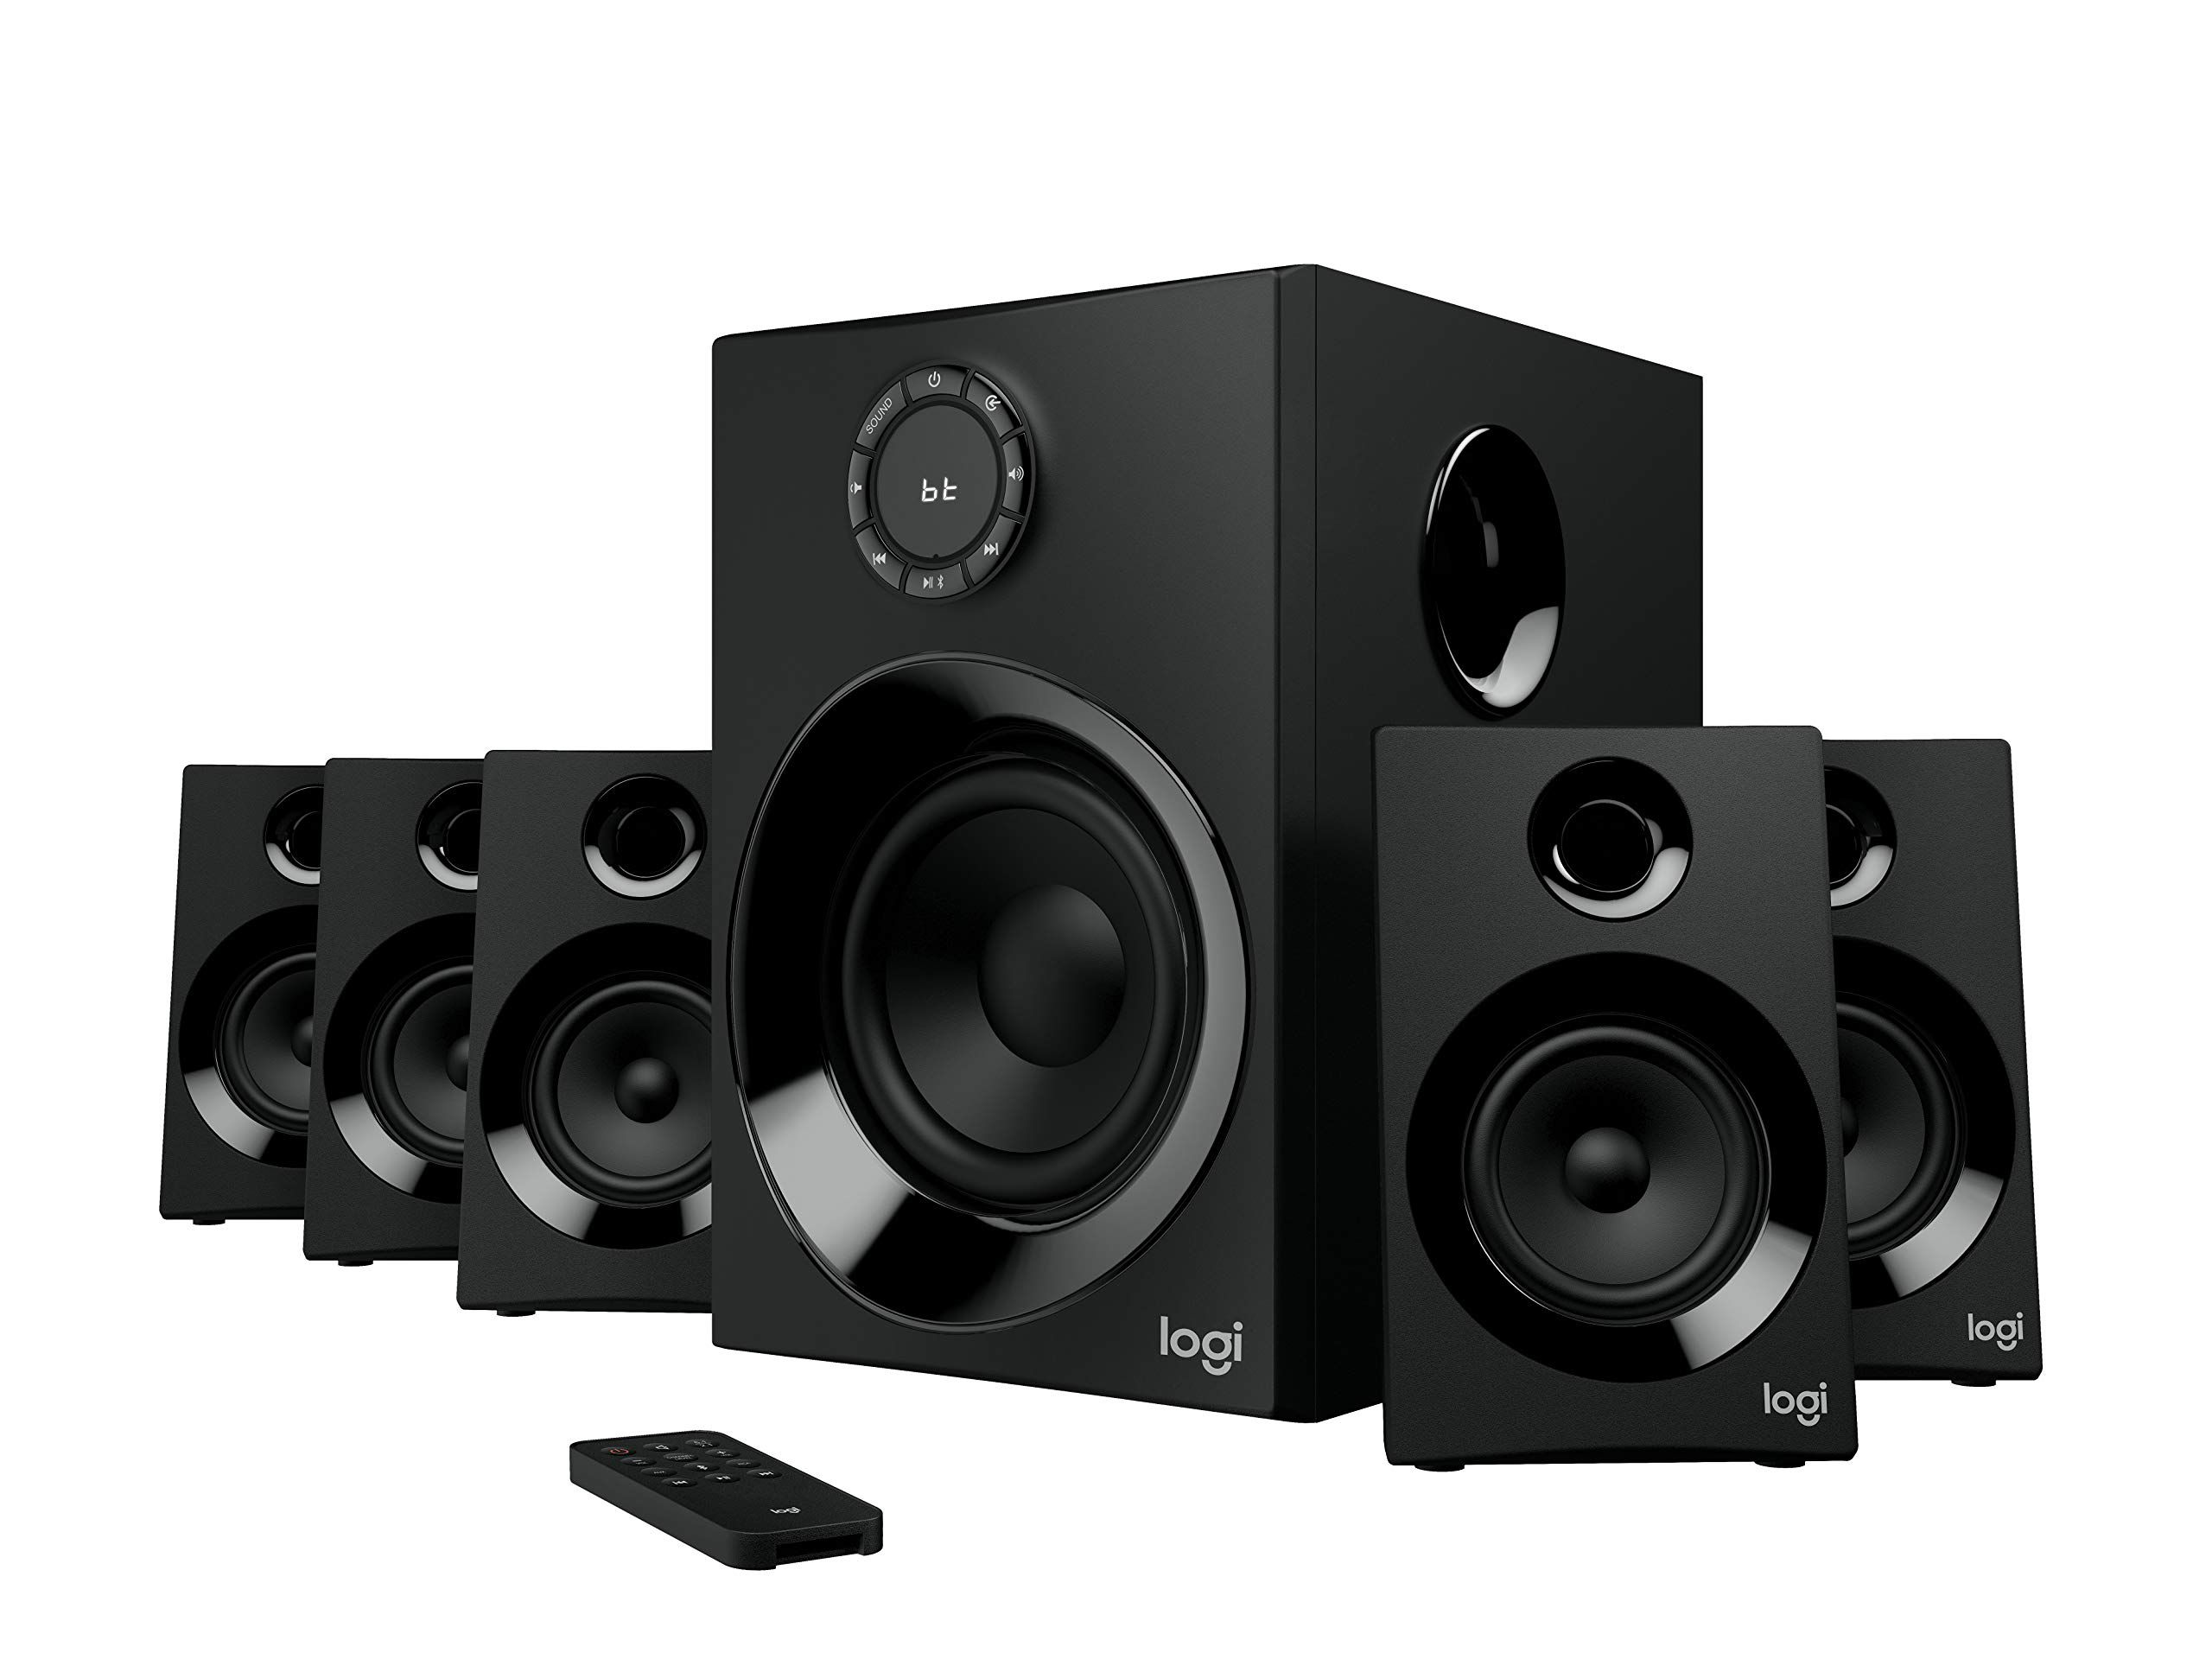 Z606 5.1 Surround Sound Speaker System with Bluetooth by Logitech